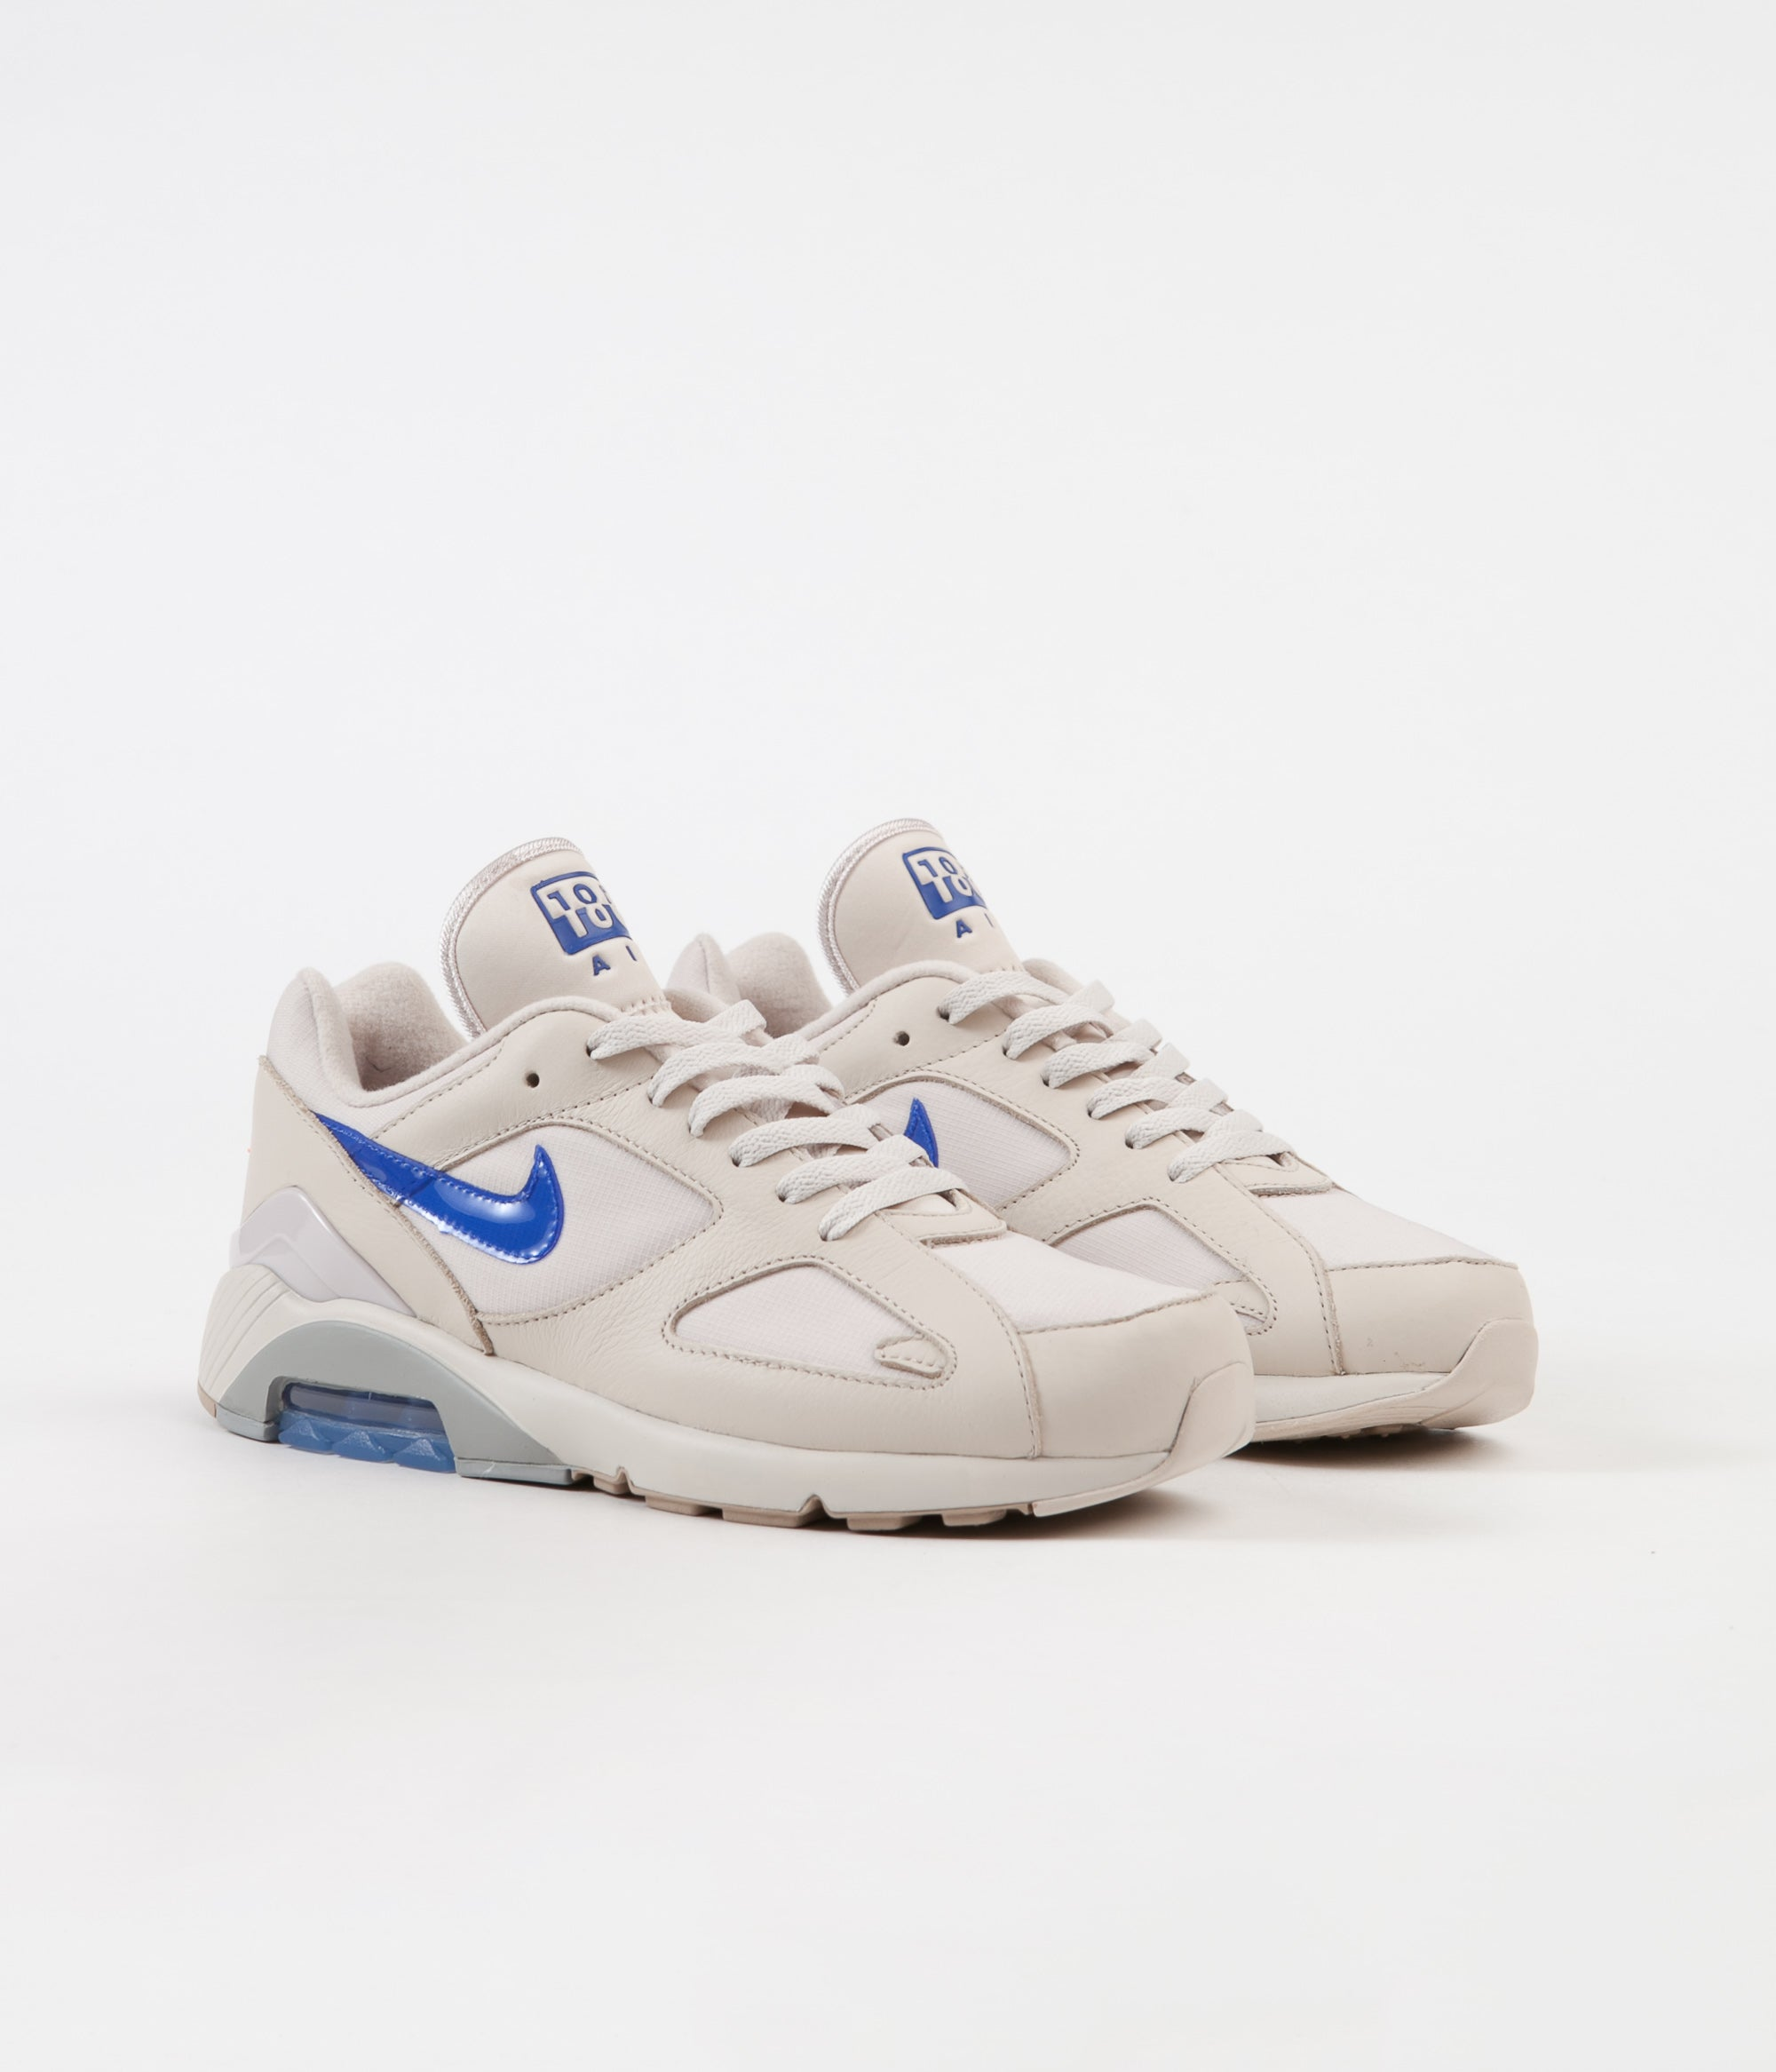 newest collection 390a9 50795 ... Nike Air Max 180 Shoes - Desert Sand  Racer Blue - Total Orange ...